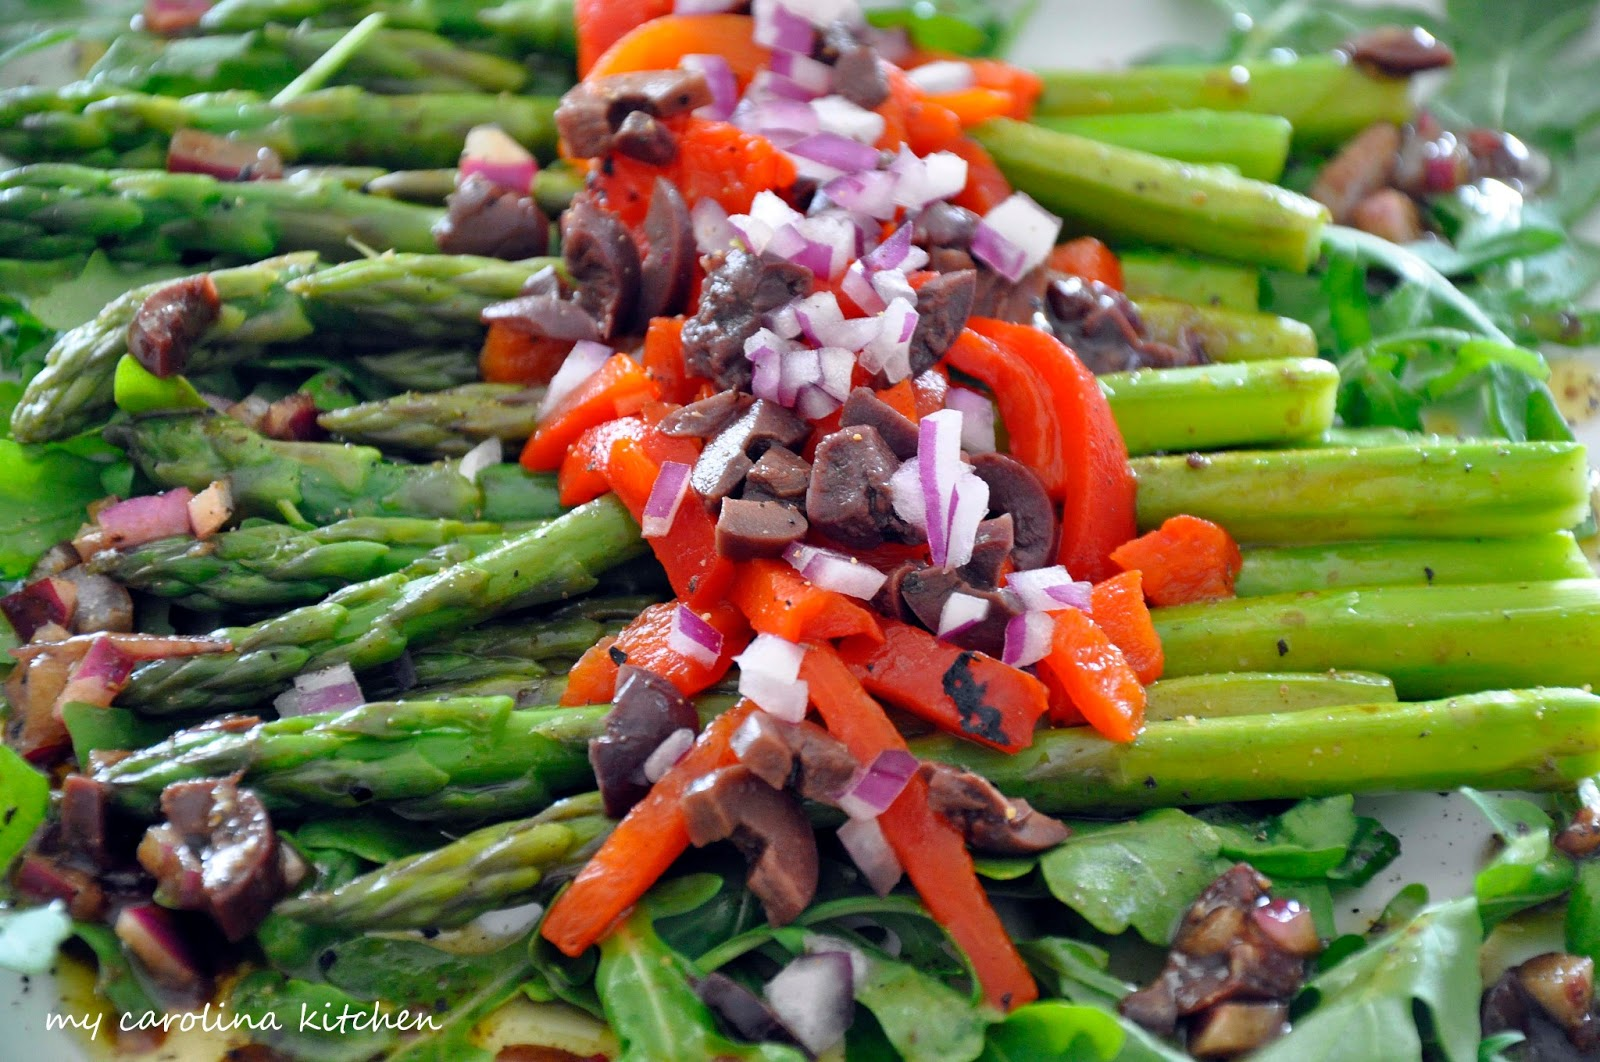 My Carolina Kitchen: Asparagus Salad on a Bed of Arugula with Roasted ...